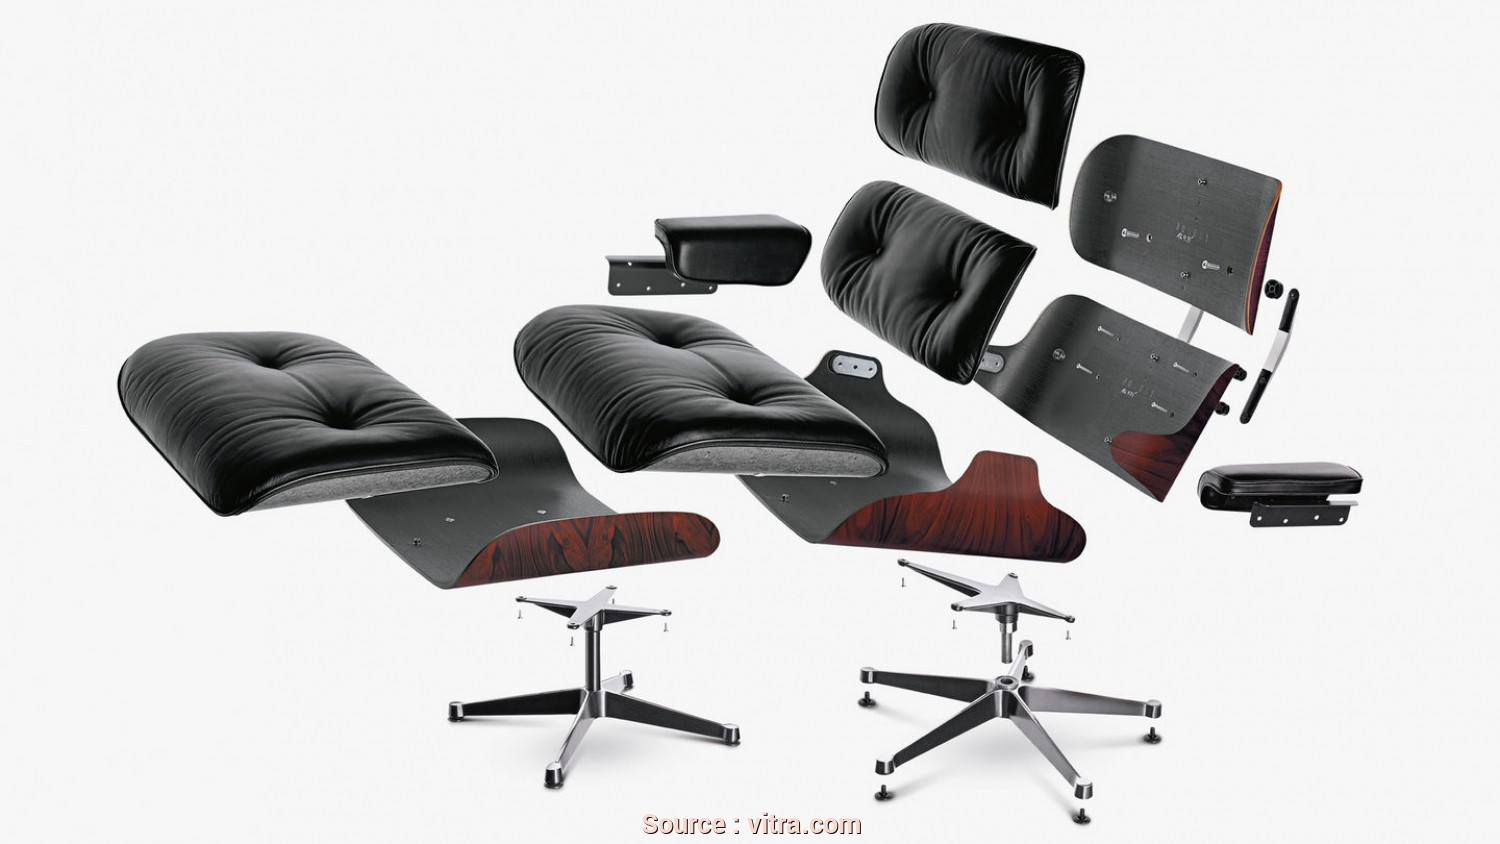 Chaise Longue Disegno Dwg, Amabile Since, Lounge Chair First Went Into Production, Average Human Height, Increased Worldwide By Nearly 10, In Close Coordination With, Eames Office